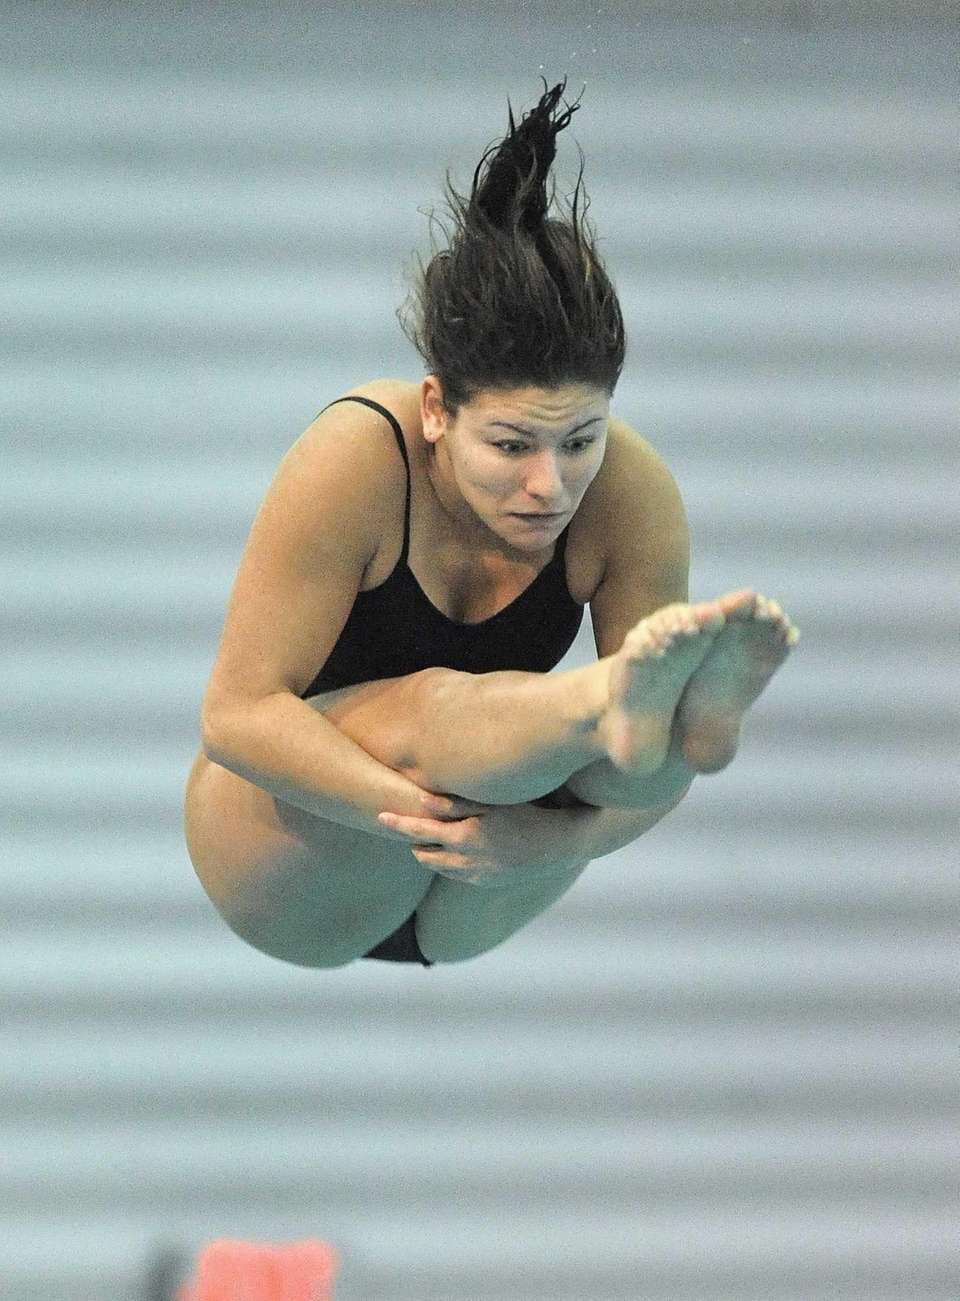 Wantagh's Victoria Zozzarro performs a dive during the